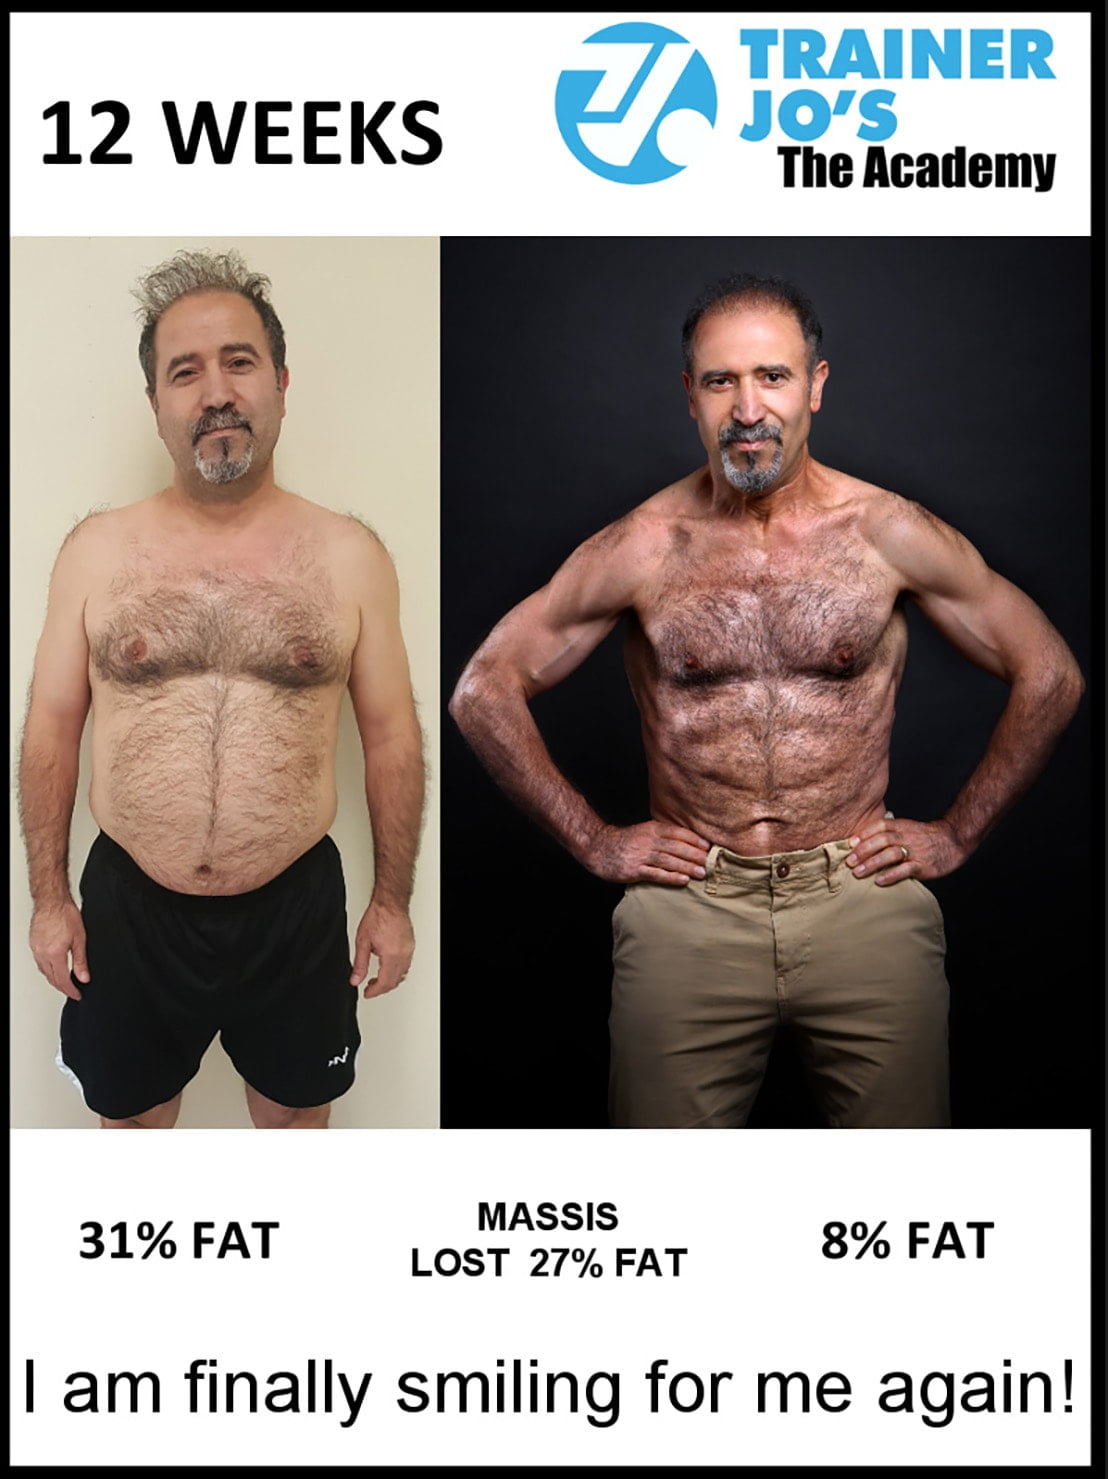 middle aged man before and after getting ripped insane transformation